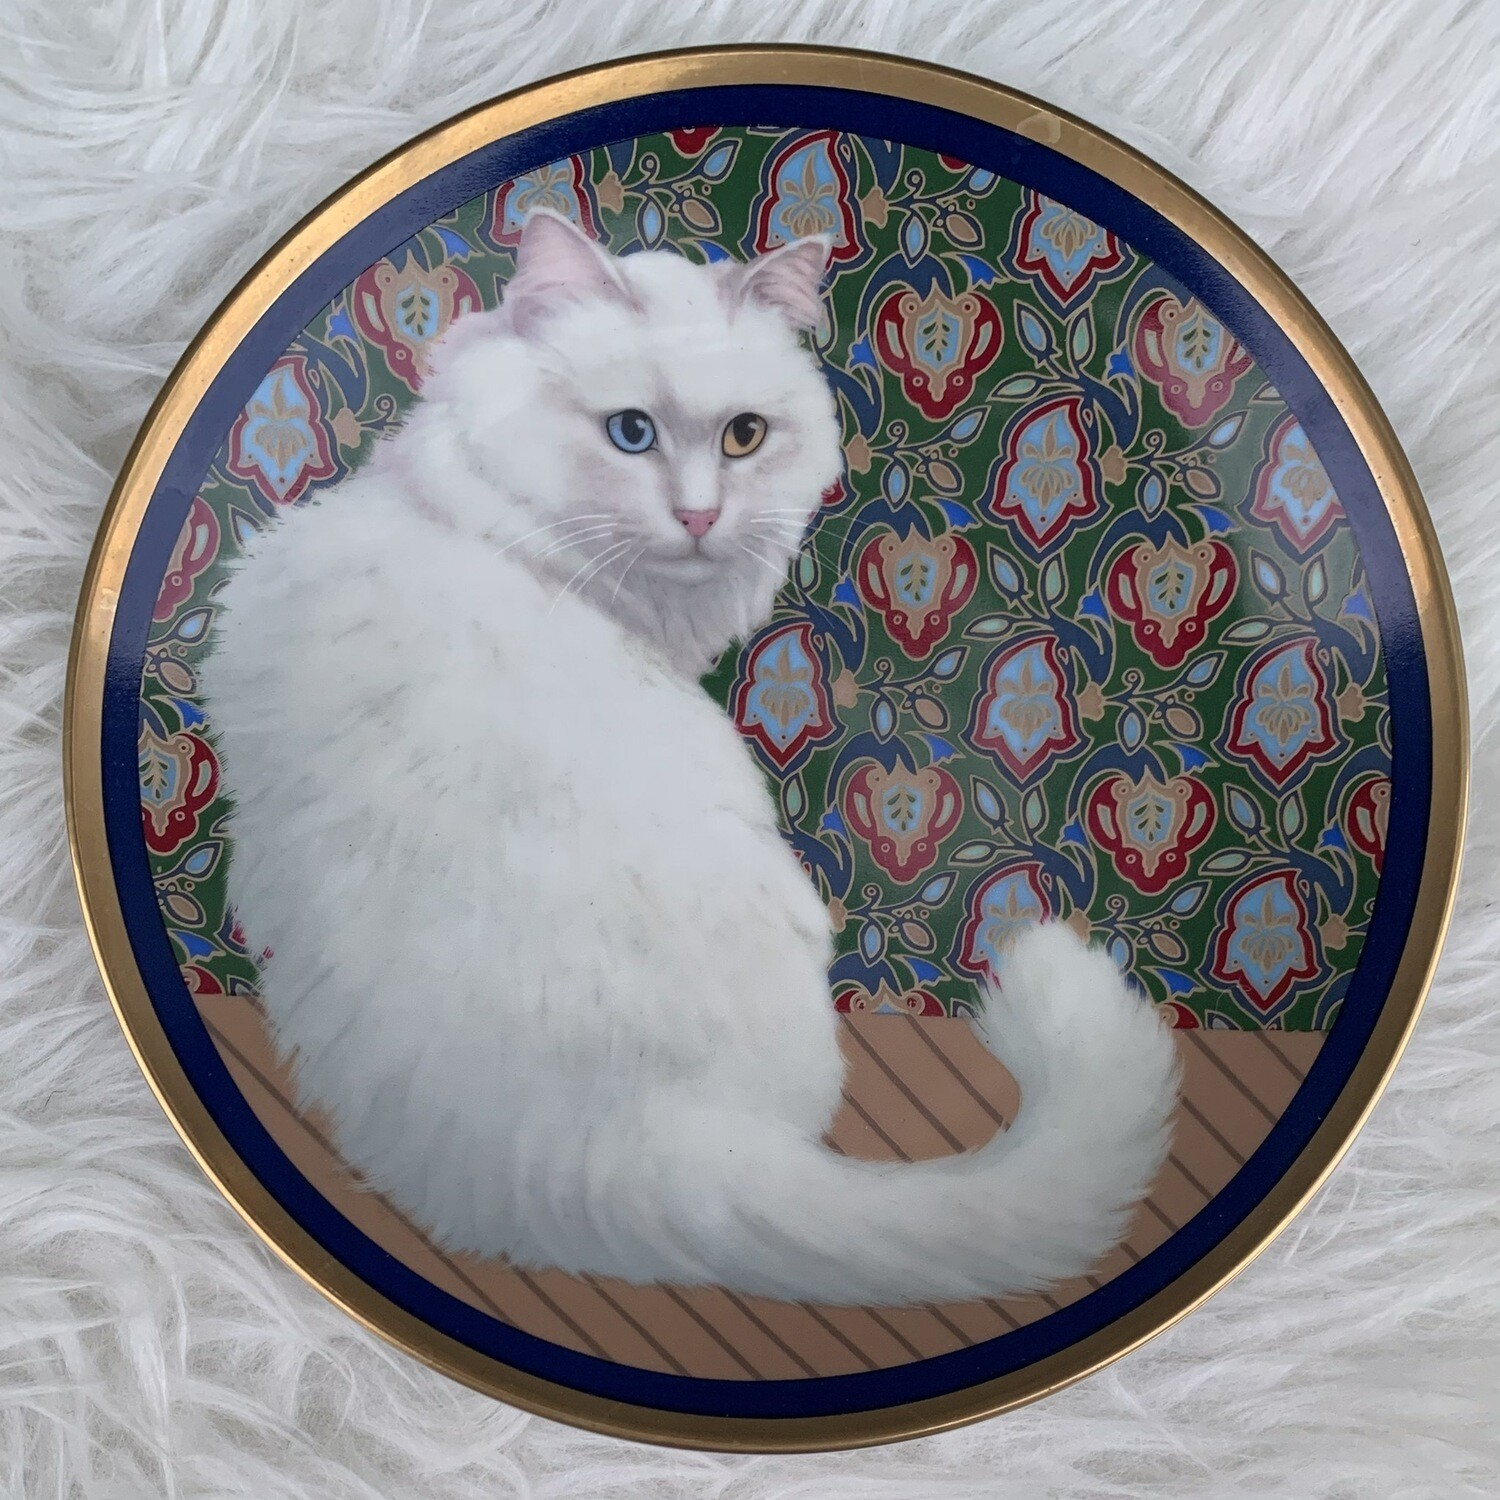 Decorative Kitty Plate